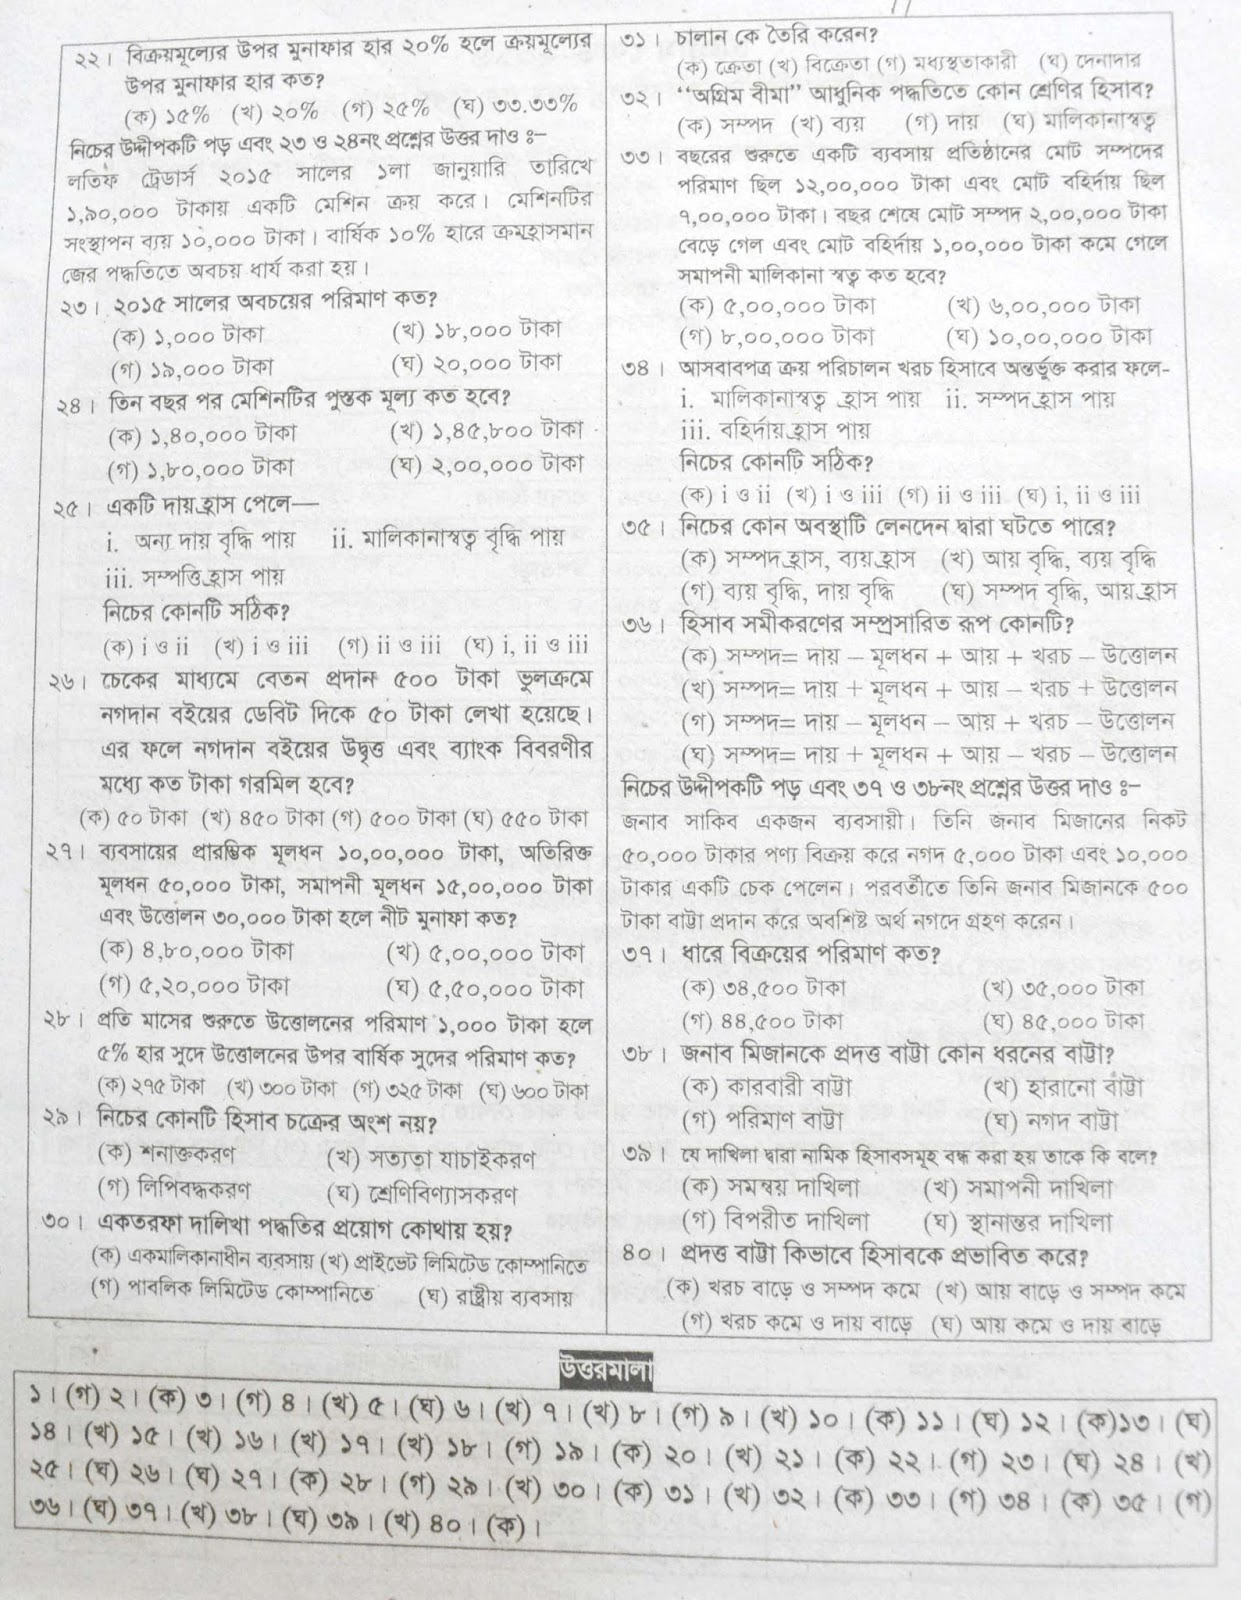 hsc Accounting 1st Paper suggestion, exam question paper, model question, mcq question, question pattern, preparation for dhaka board, all boards